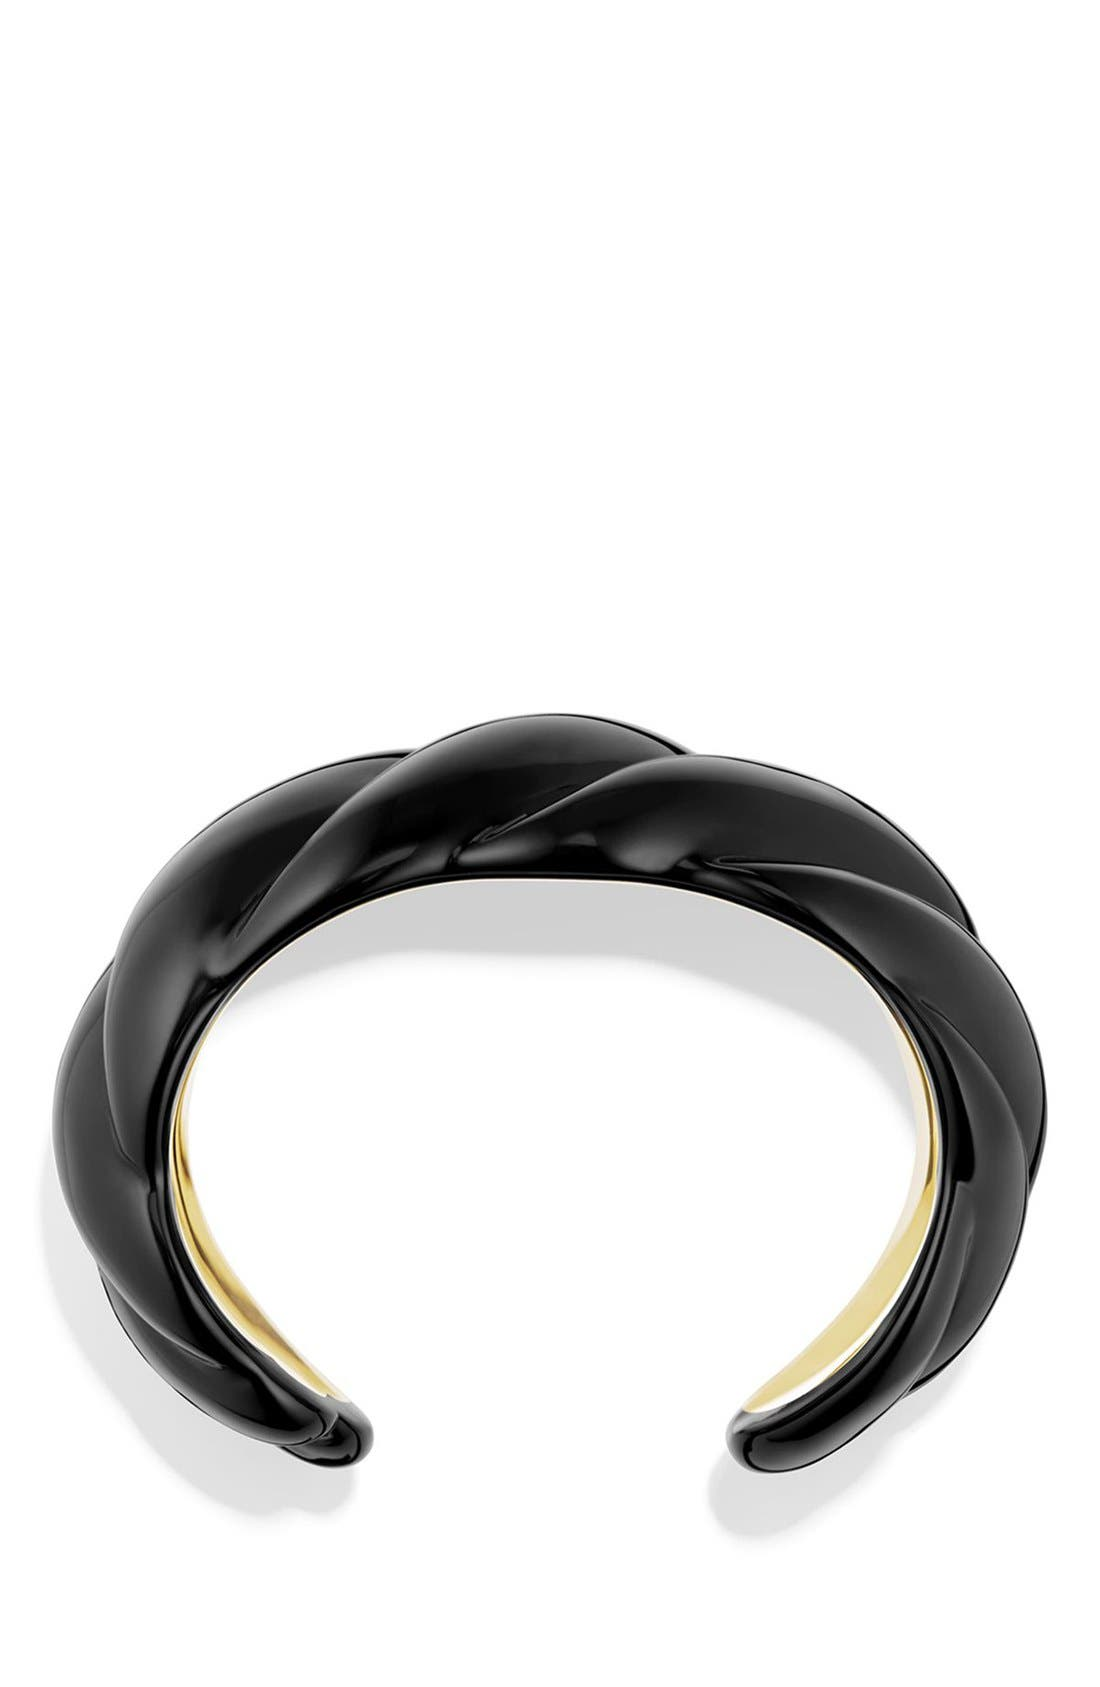 'Sculpted Cable' Resin Cuff Bracelet with 18k Gold,                             Alternate thumbnail 2, color,                             YELLOW GOLD/ BLACK